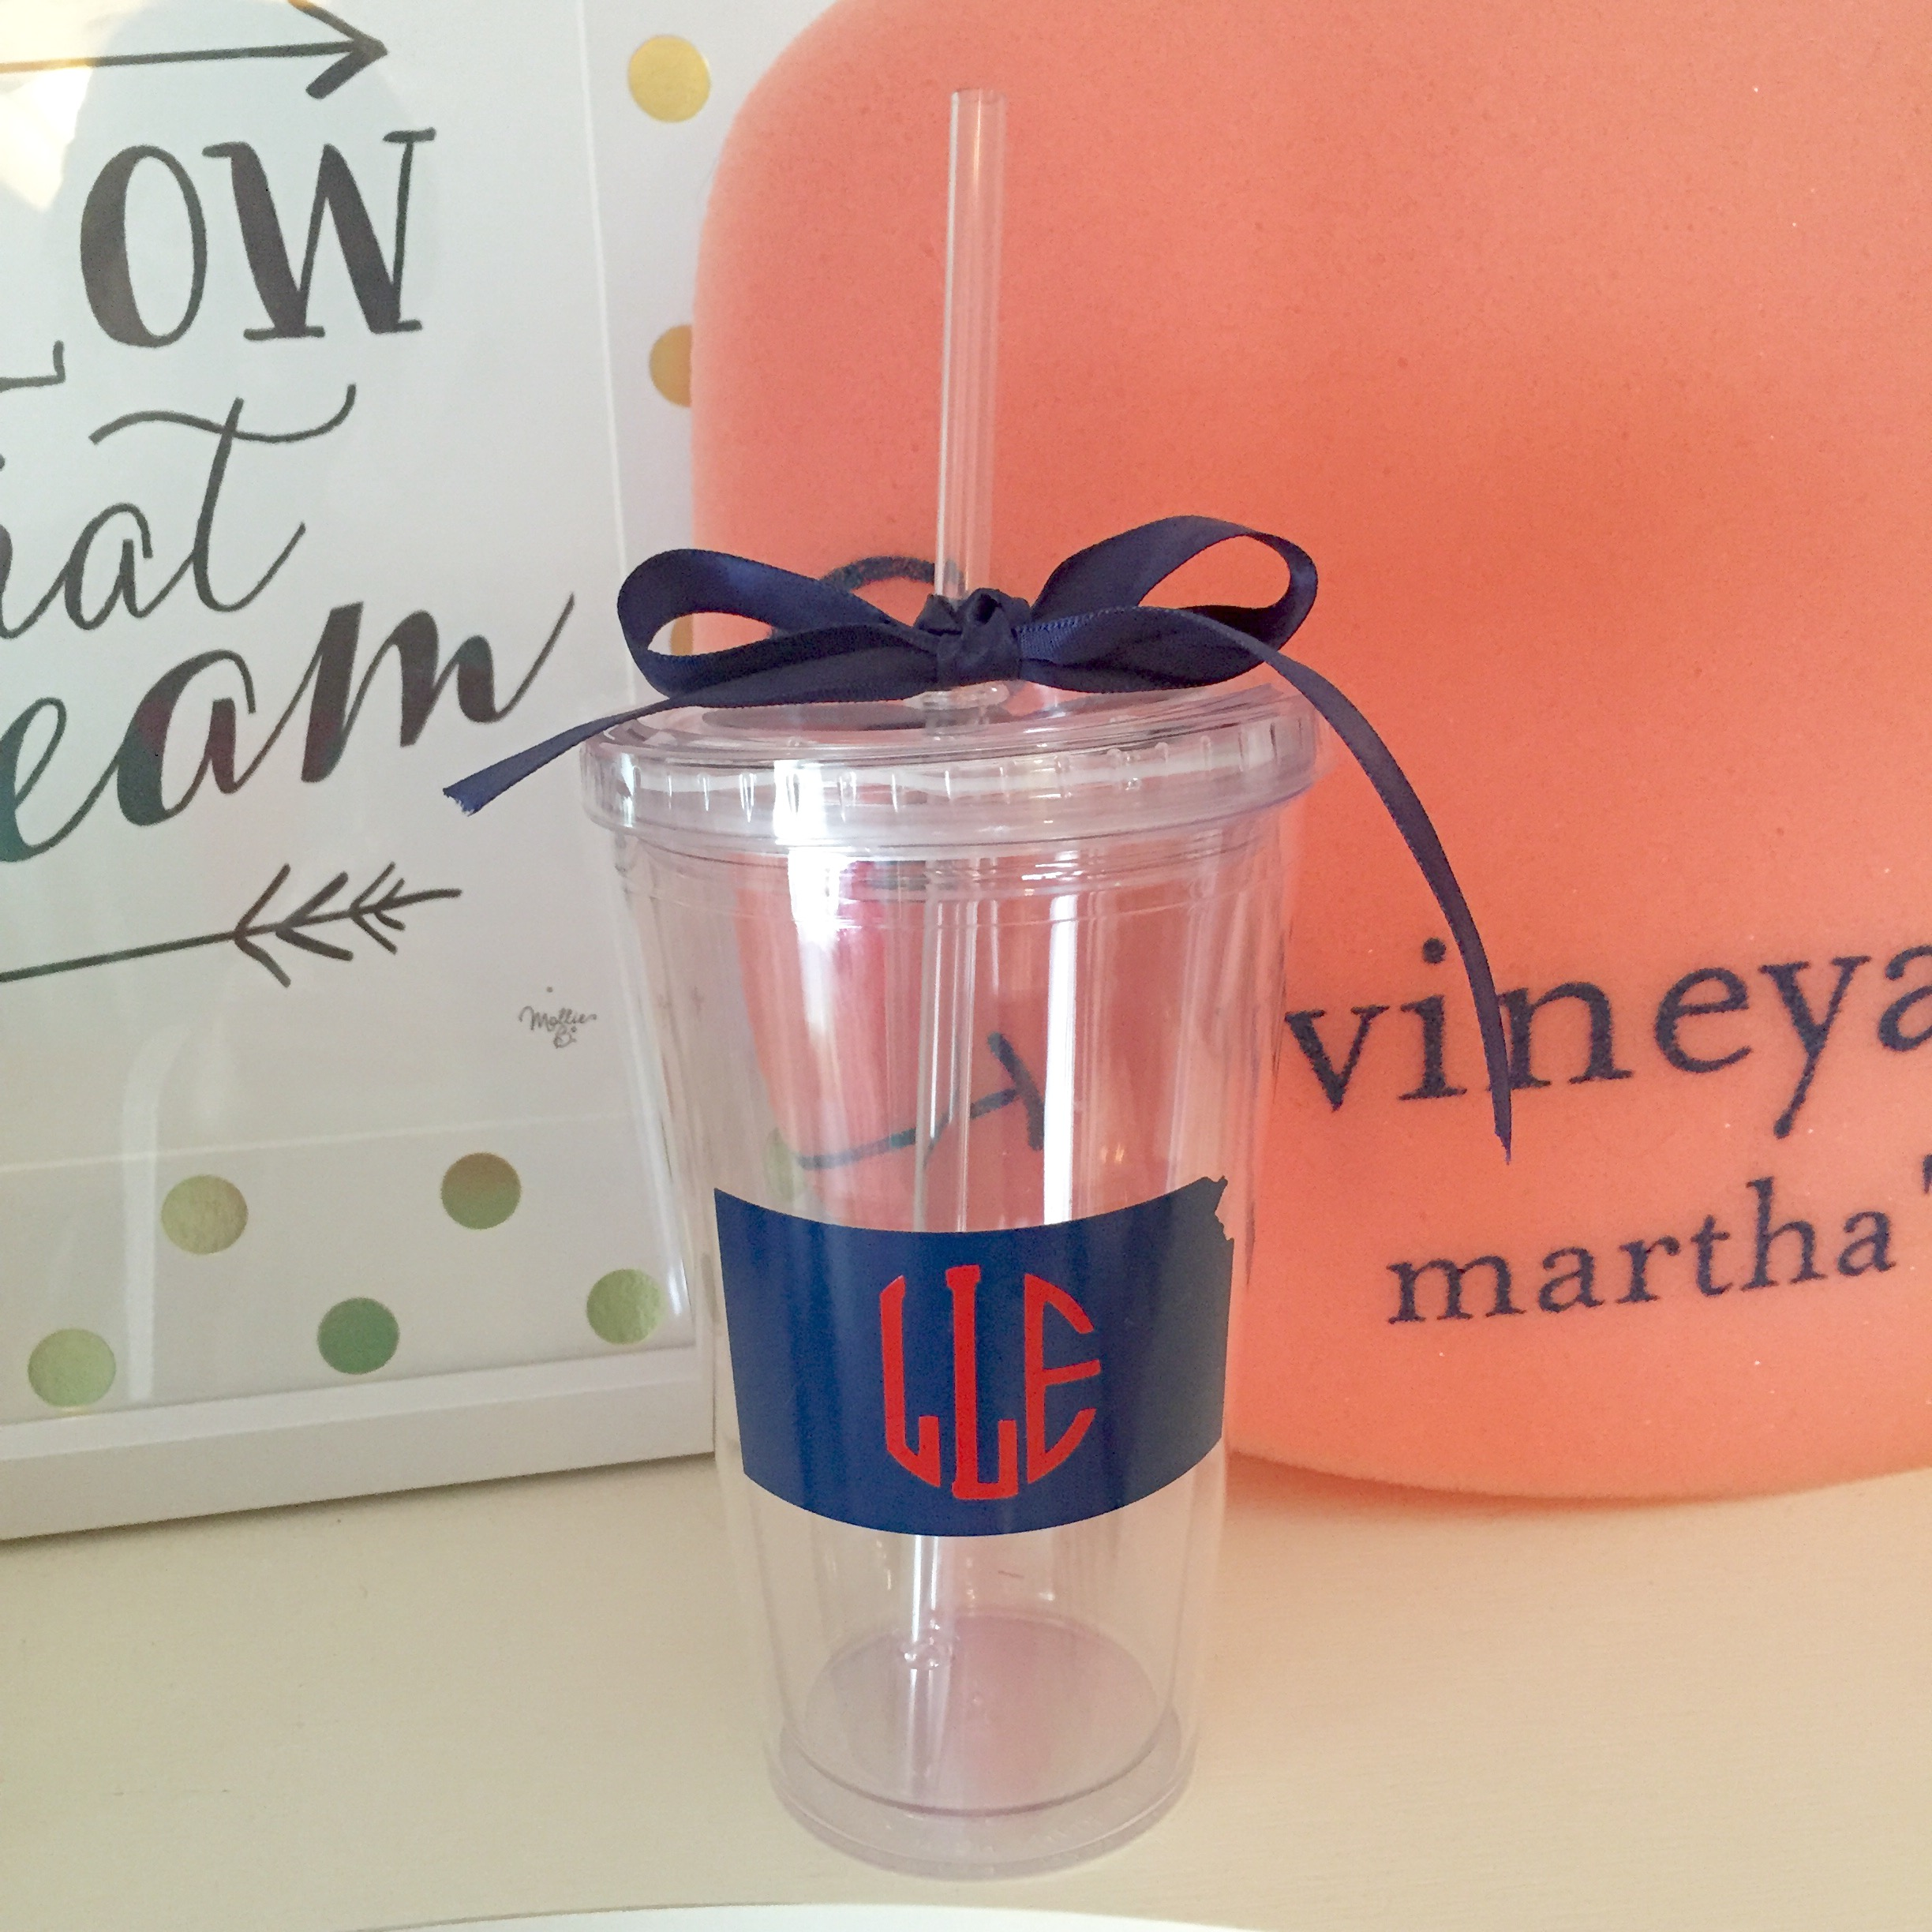 Smitten Monogram monogrammed state tumbler cup / great graduation gift!